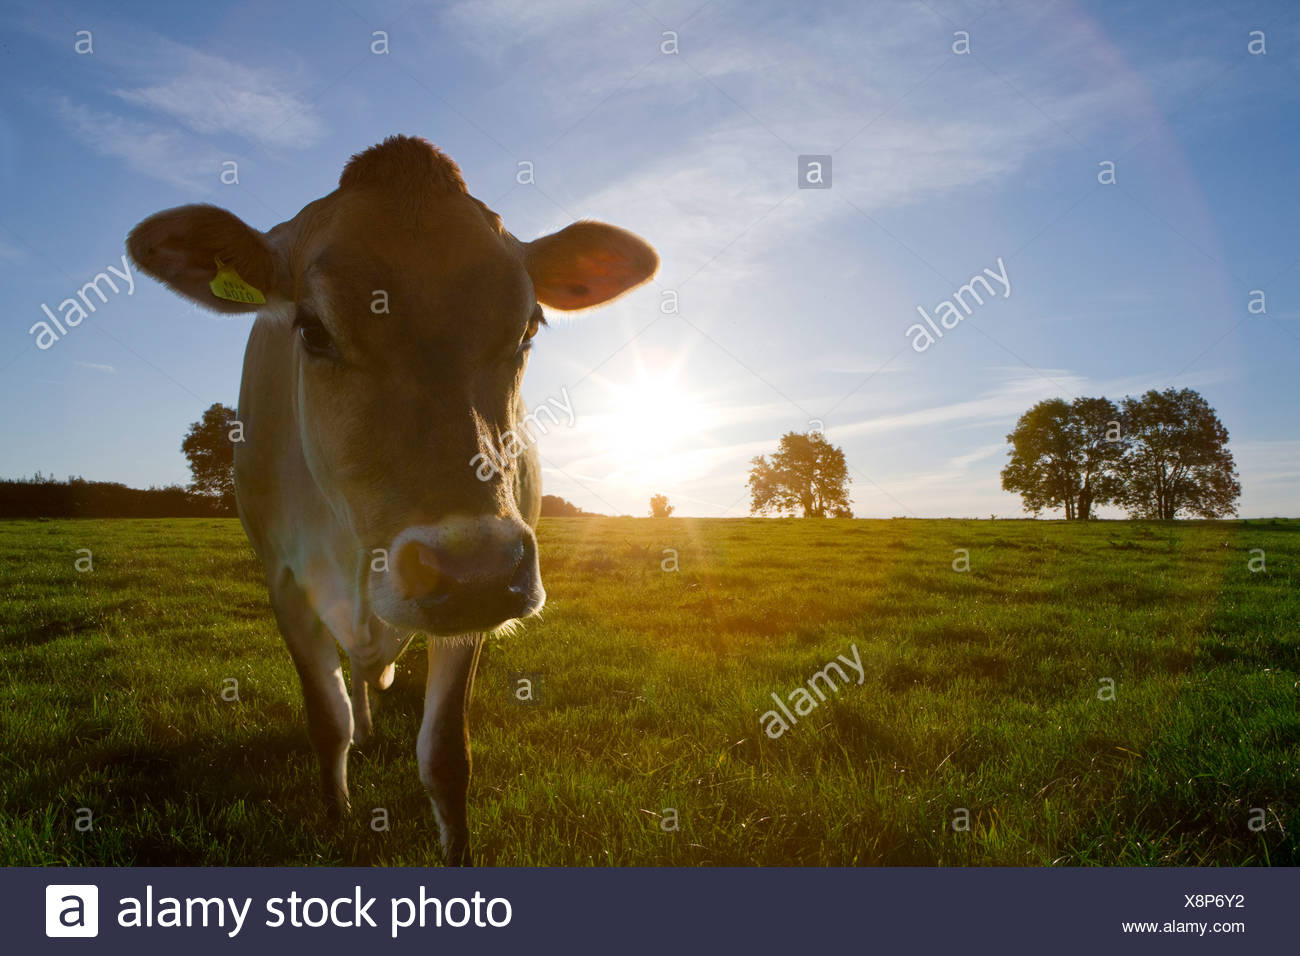 Jersey cow in sunny field - Stock Image